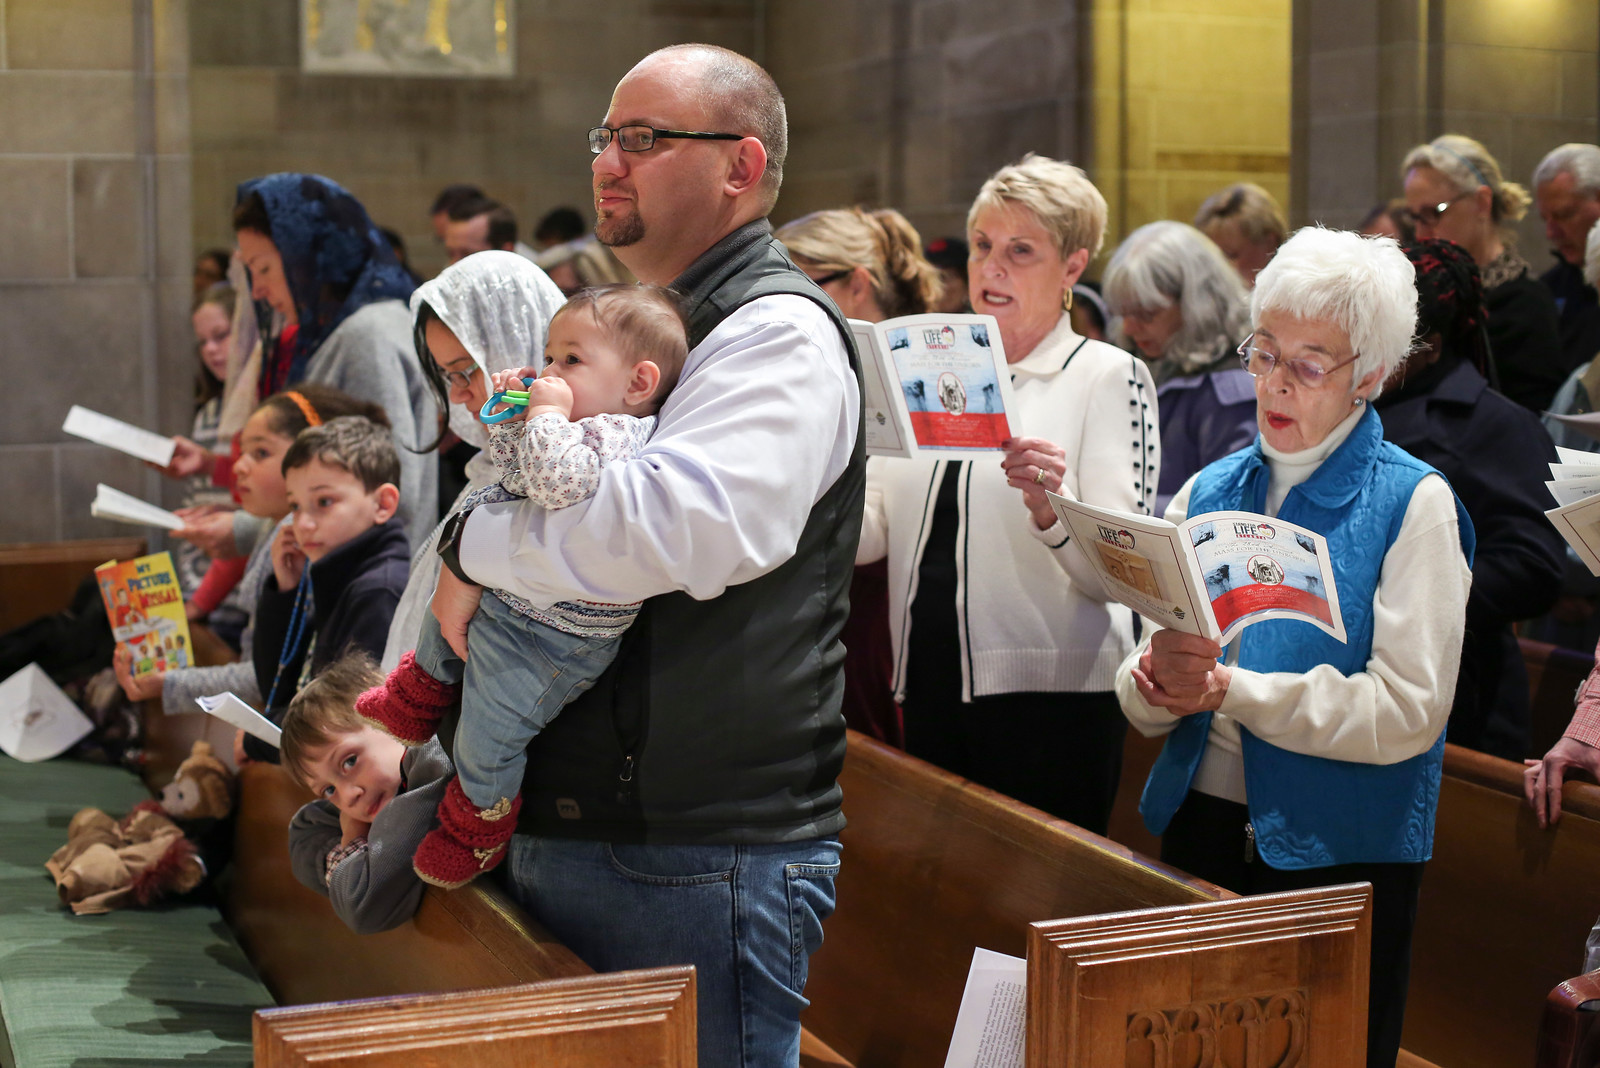 Mass for the Unborn/Stand for Life